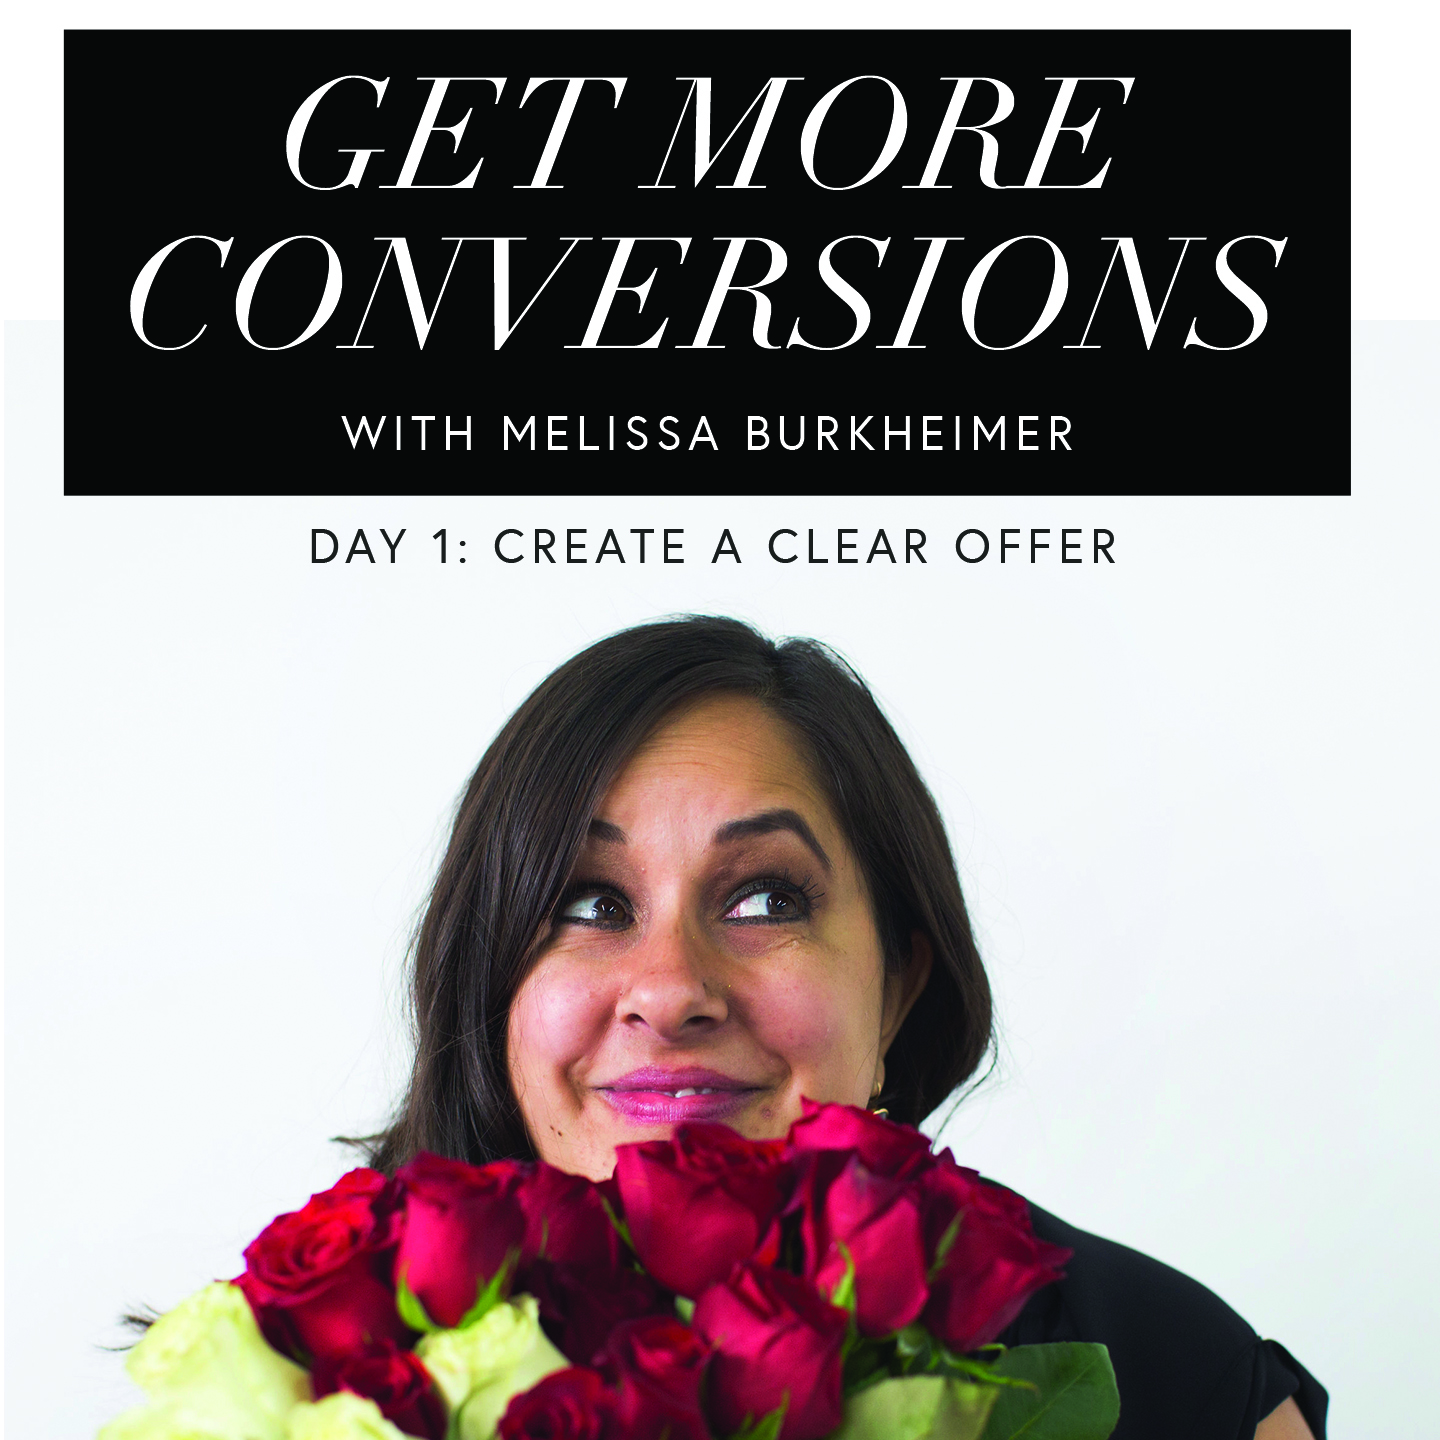 Check out episode 68 of The Design Business Show to learn how a clear offer can help you get more conversions.